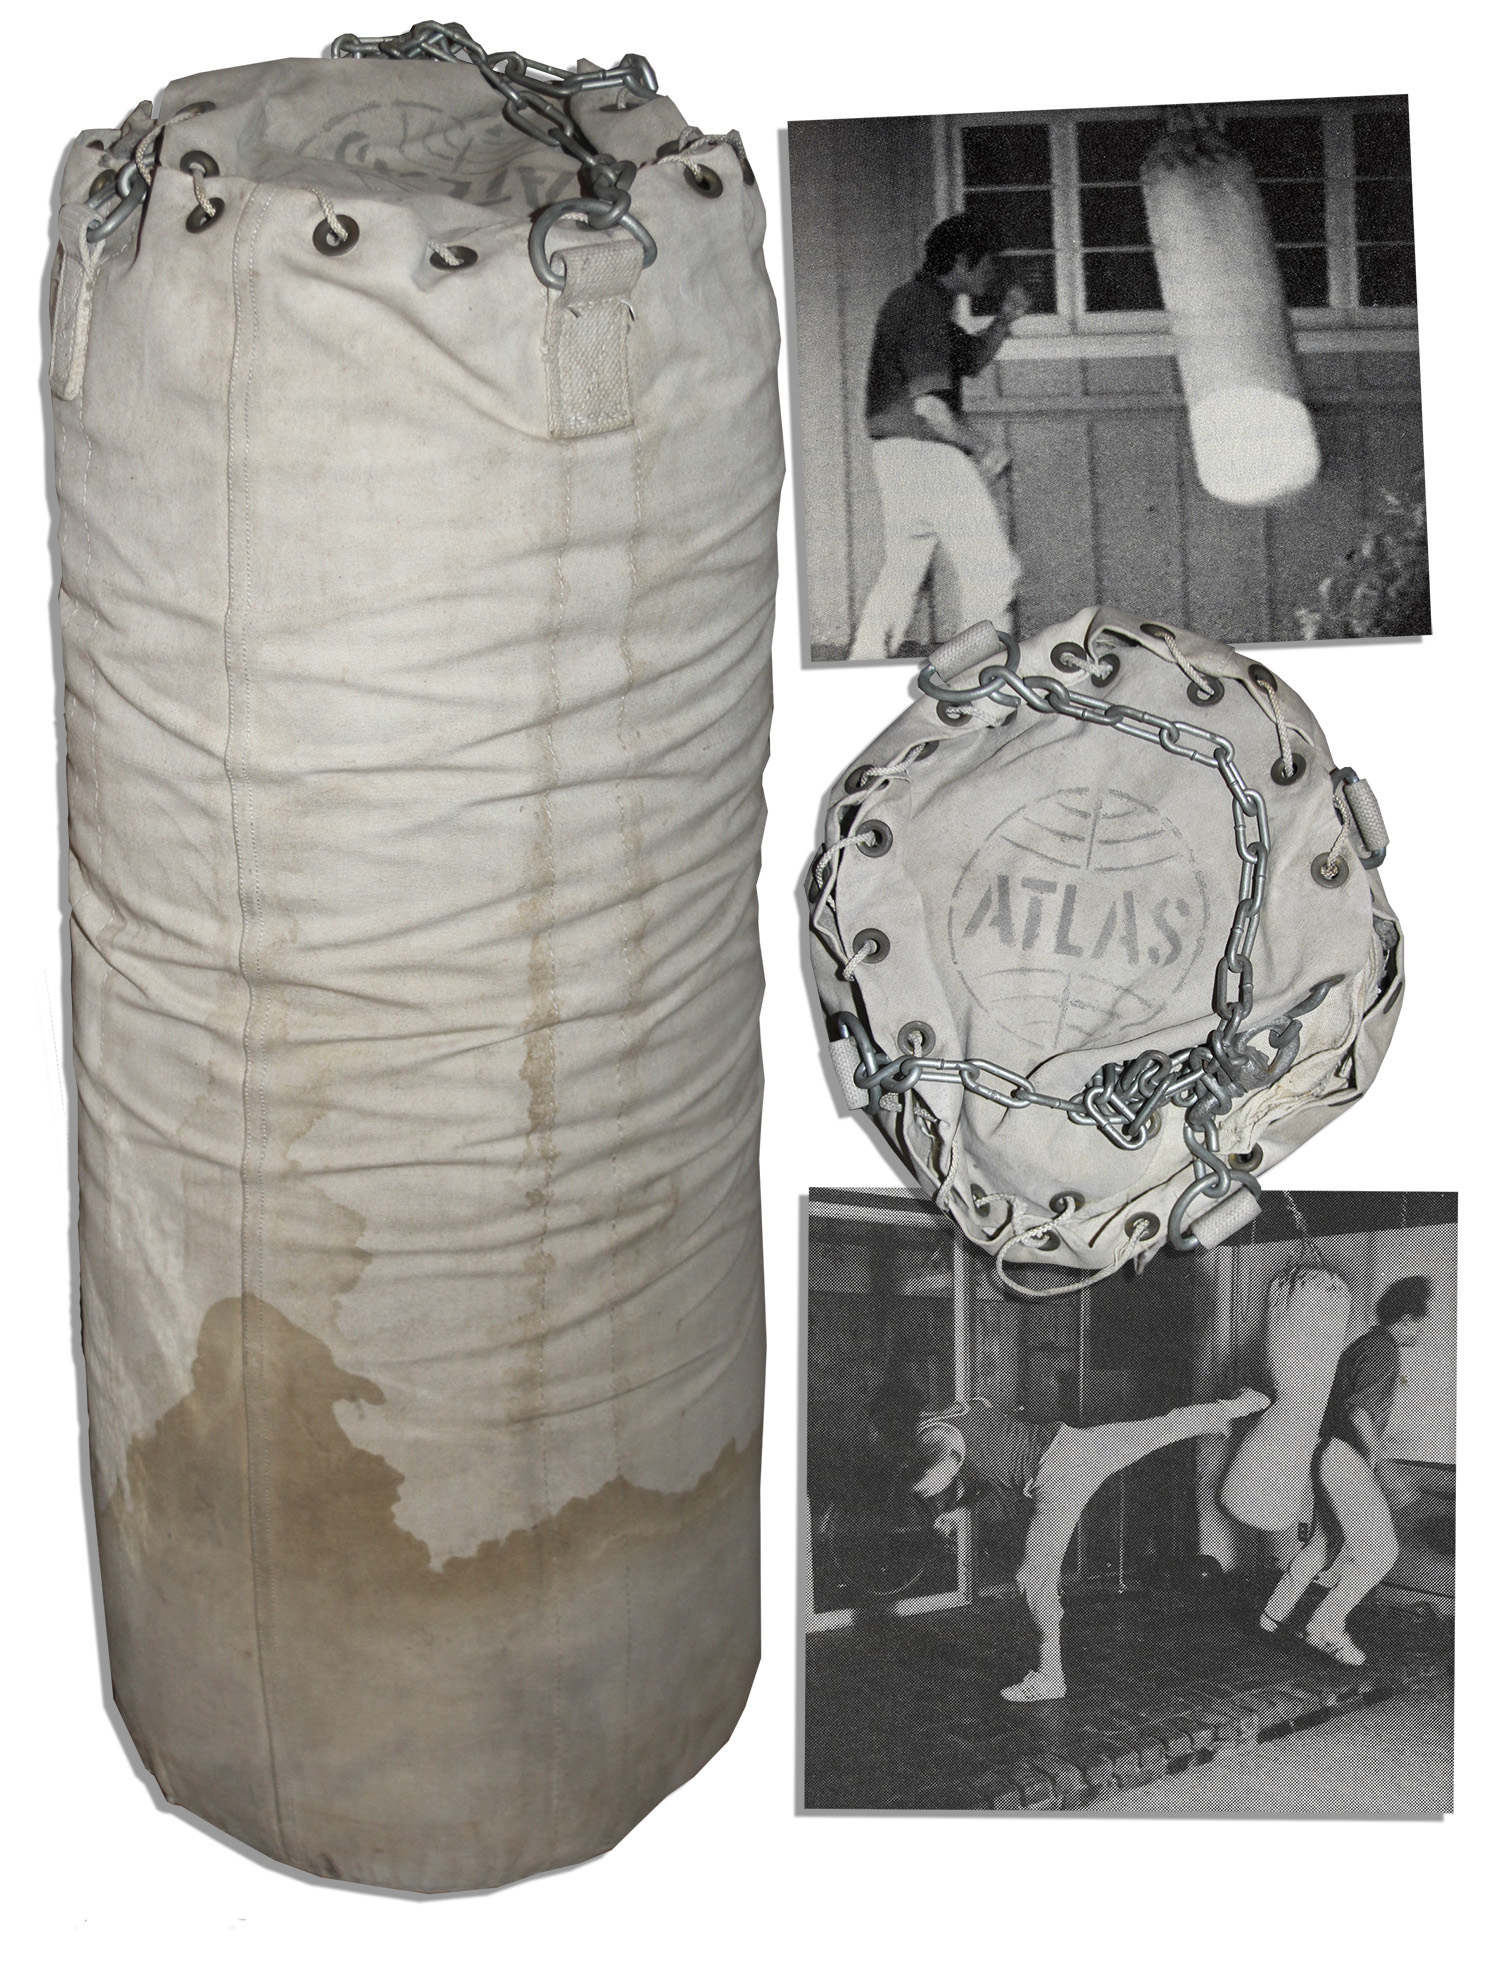 Bruce Lee Personally Owned And Used Heavy Bag